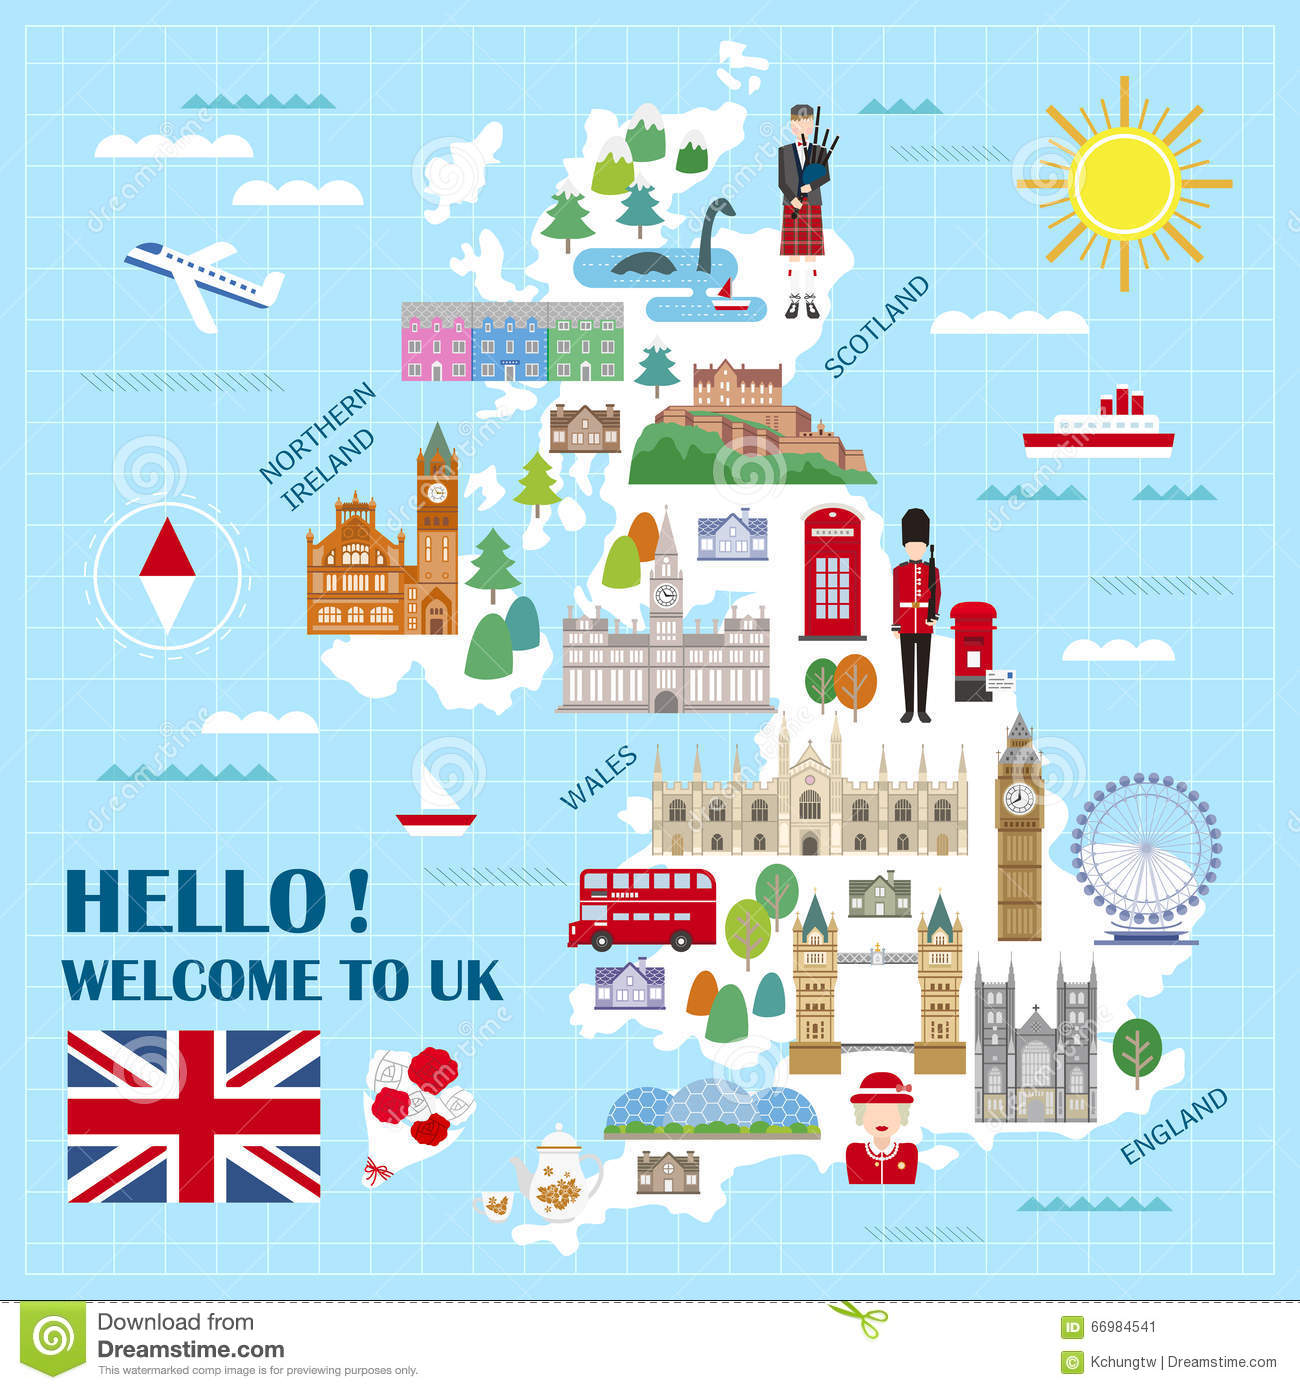 Travel Map London.United Kingdom Travel Map Stock Vector Illustration Of London